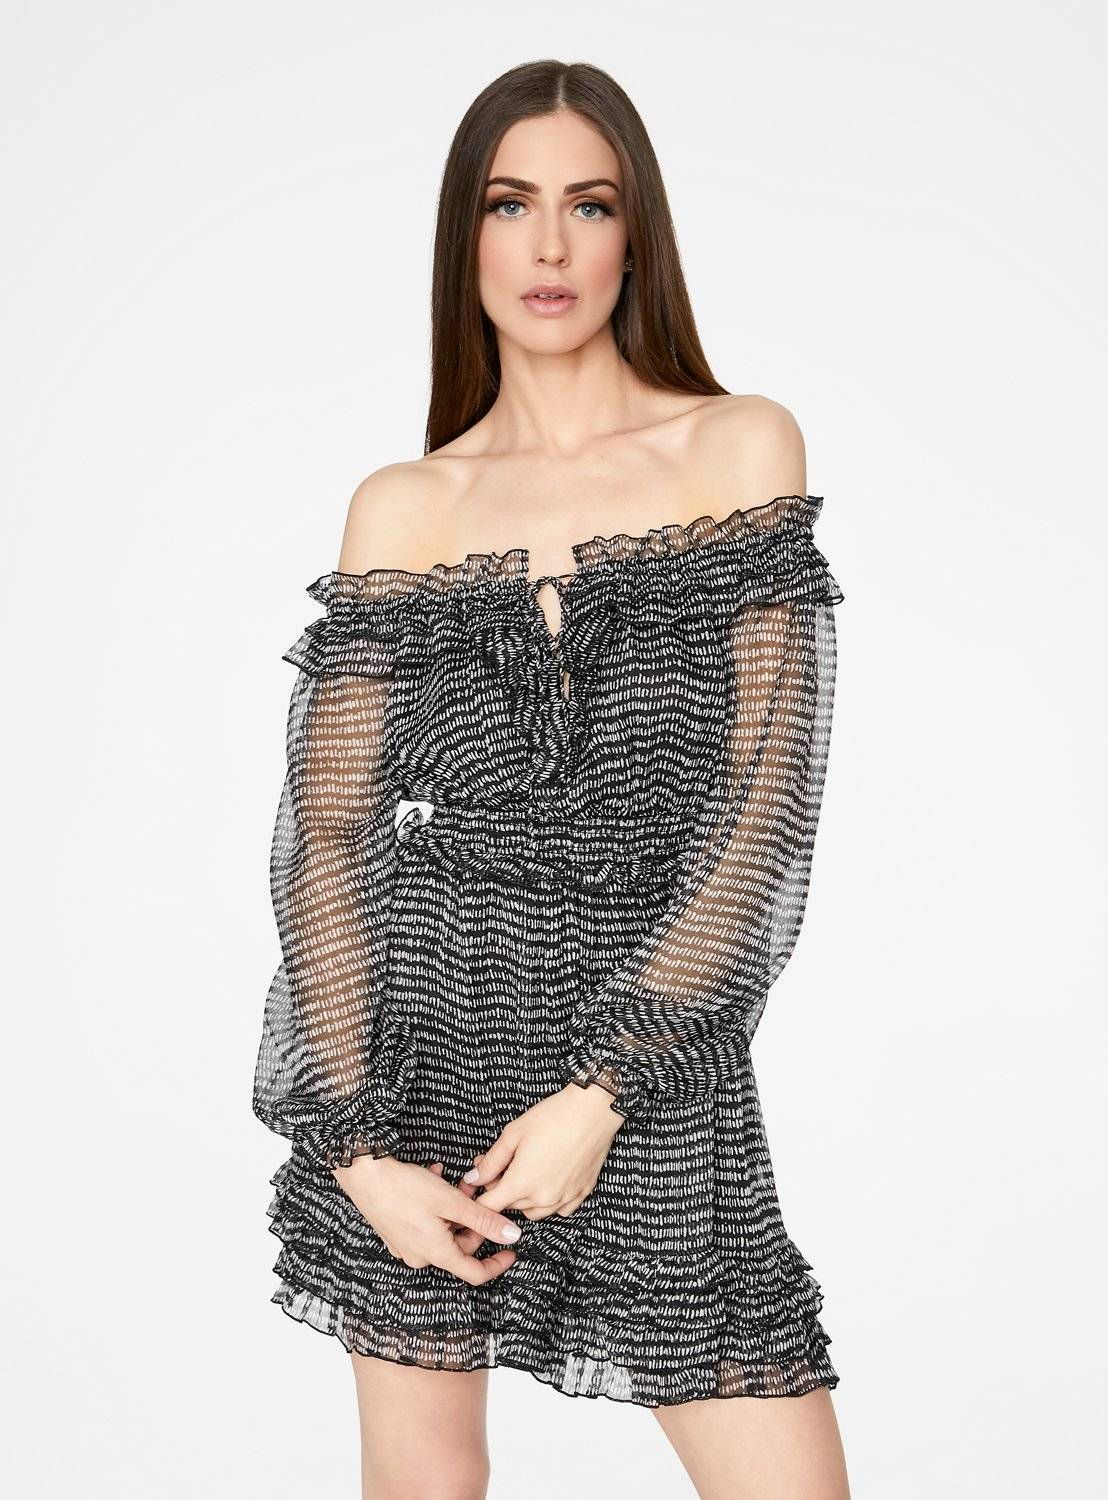 Black and White Long Sleeve Off-the-Shoulder Ruffle Dress